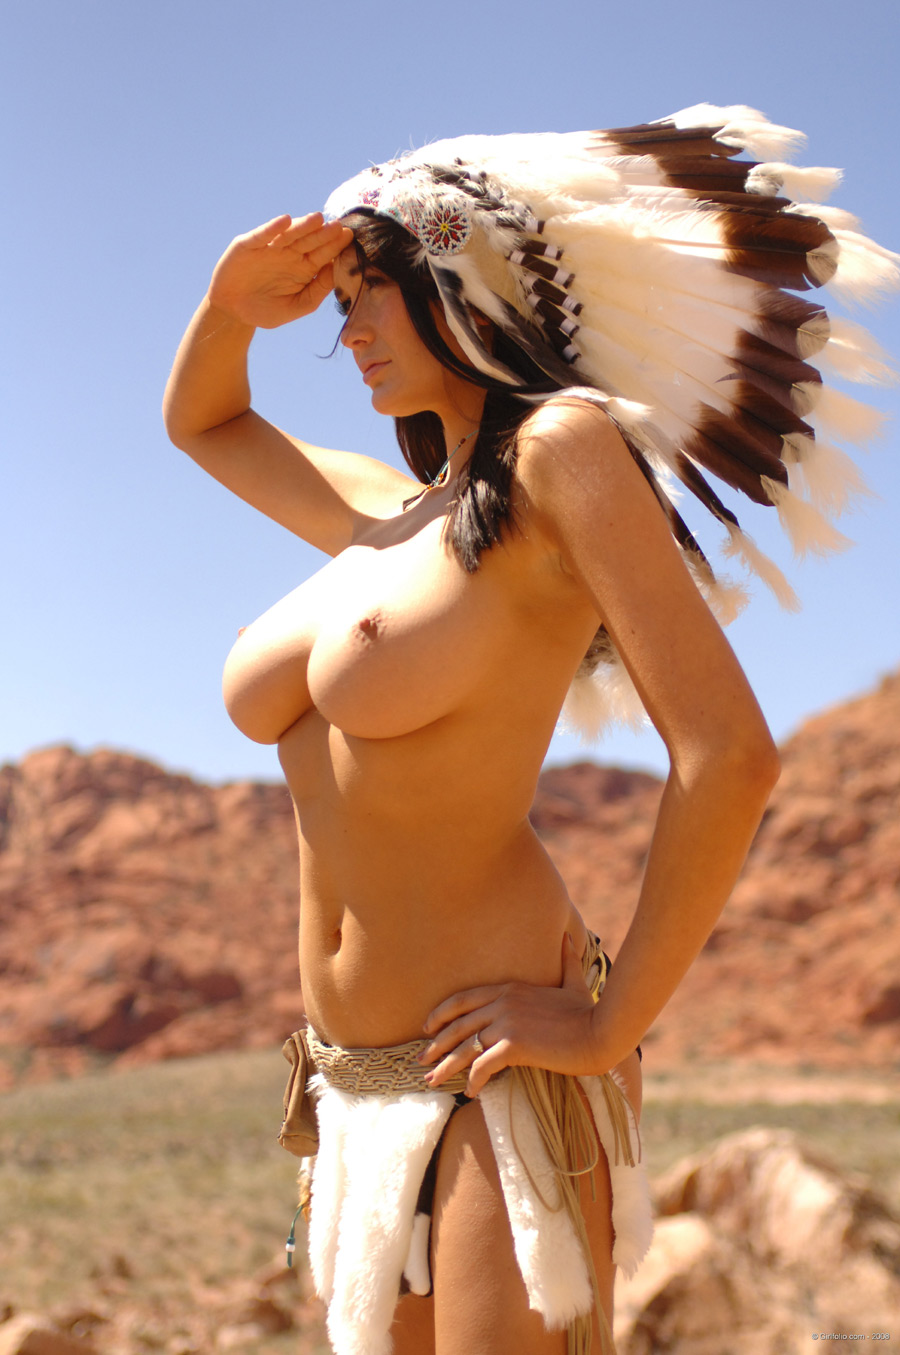 Touching Hottest sexiest american indian girls confirm. agree